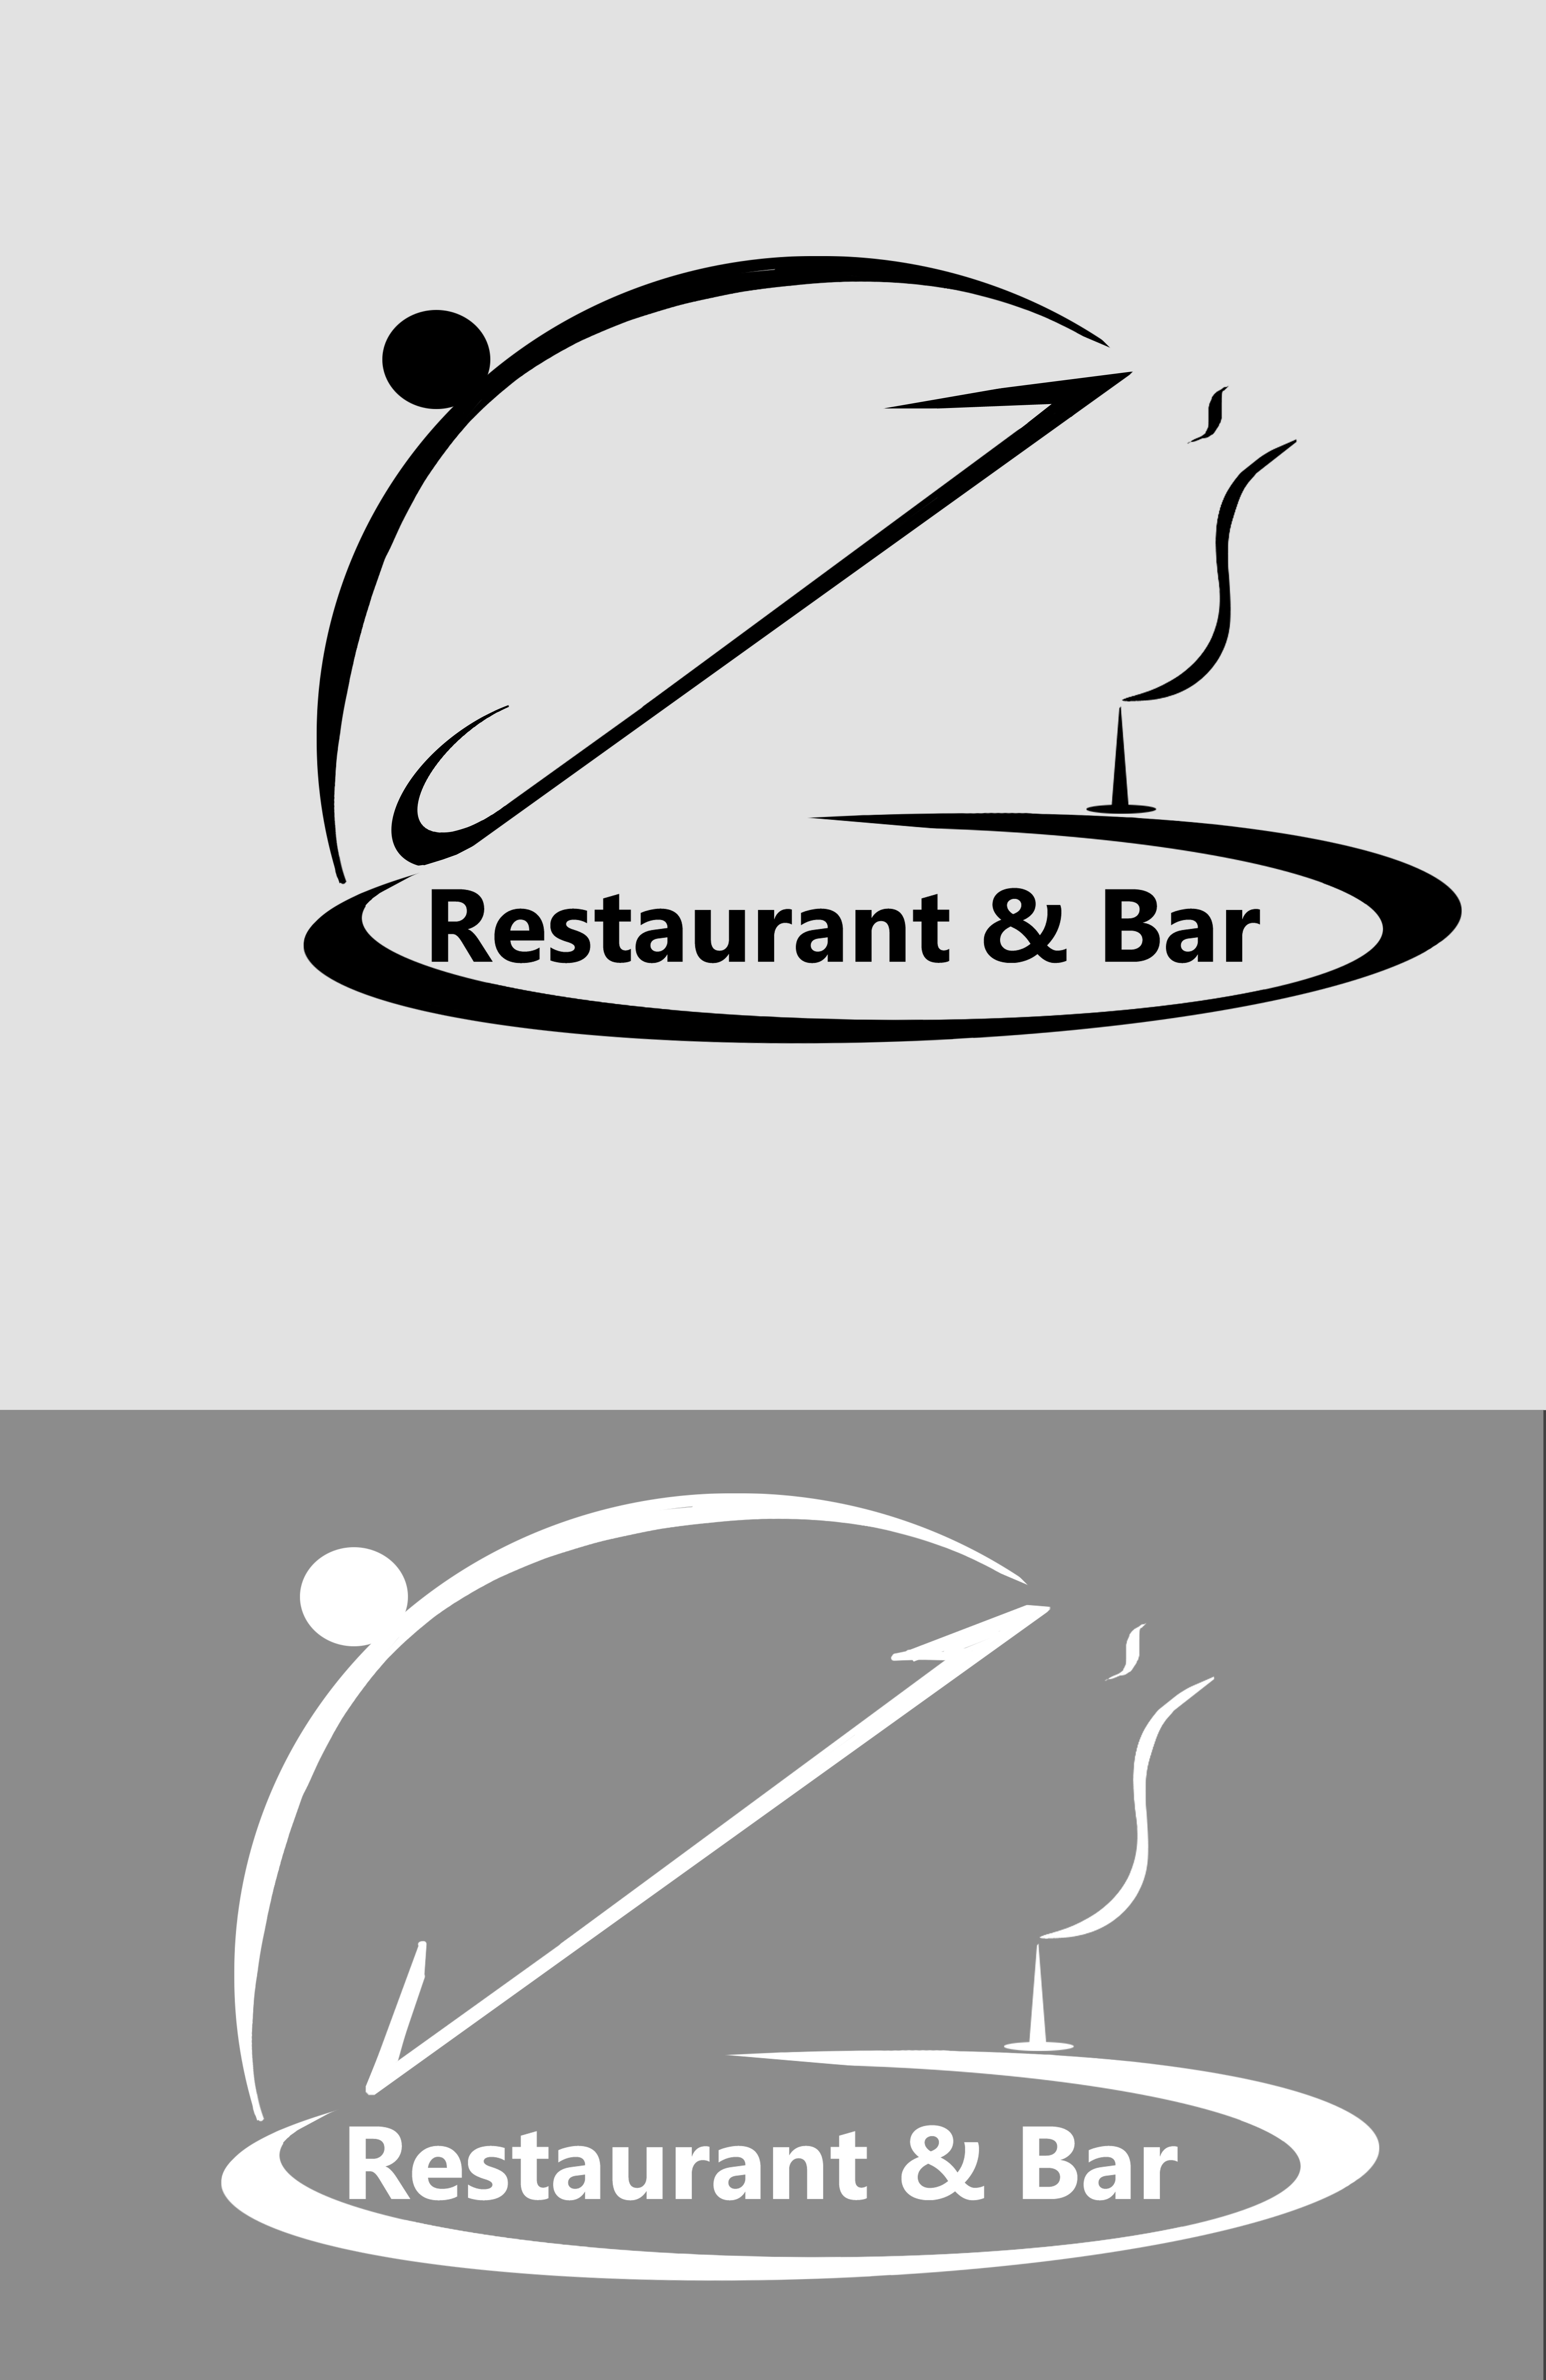 Logo Design by Jack Rajgor - Entry No. 52 in the Logo Design Contest Inspiring Logo Design for Cj's.